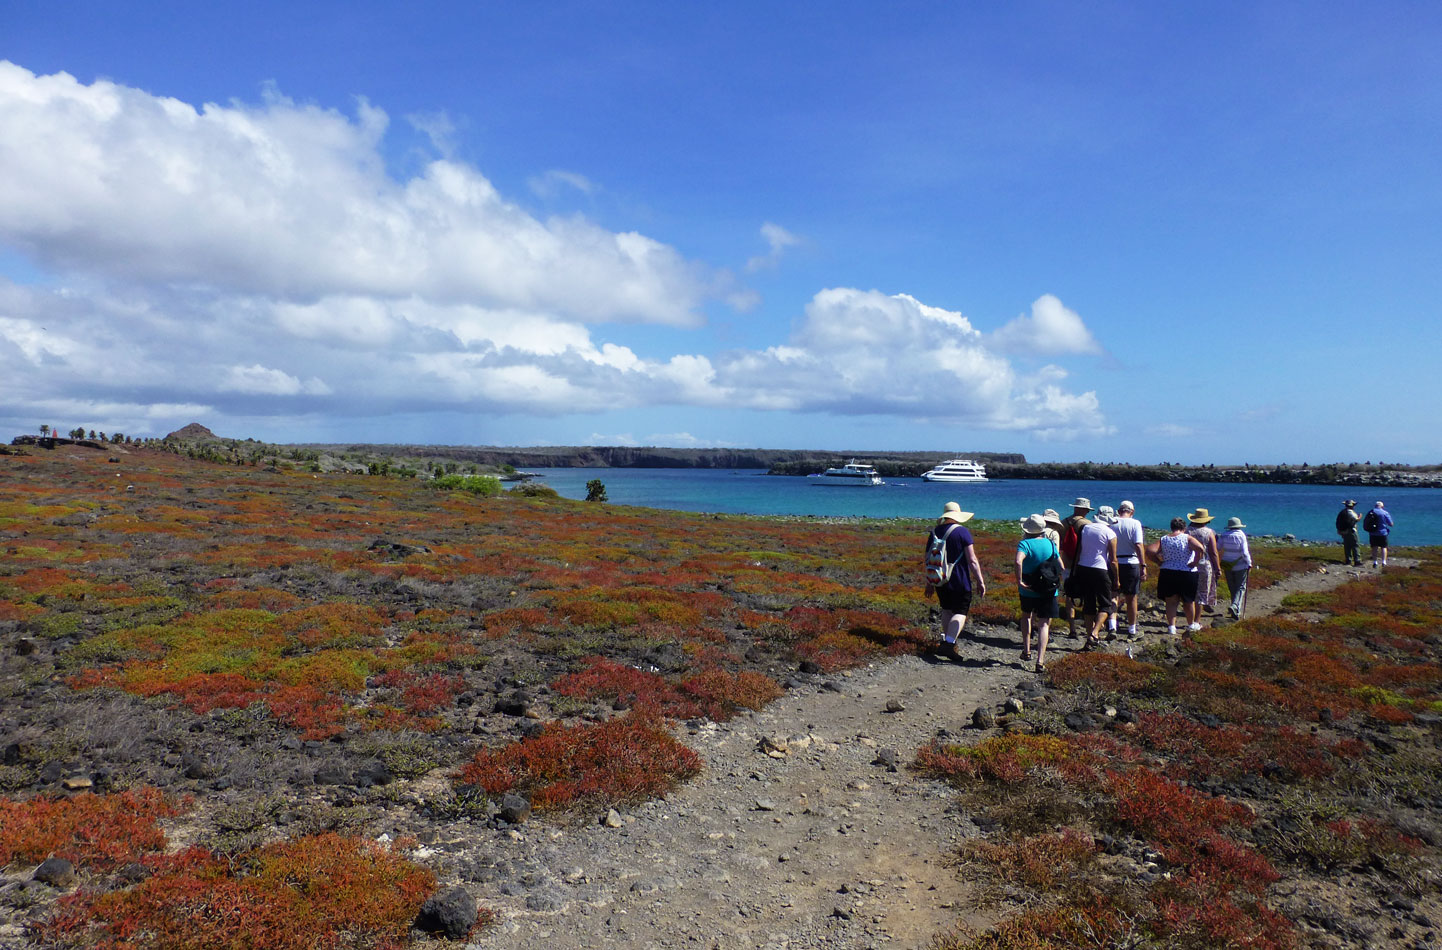 Here is our group walking back to shore.